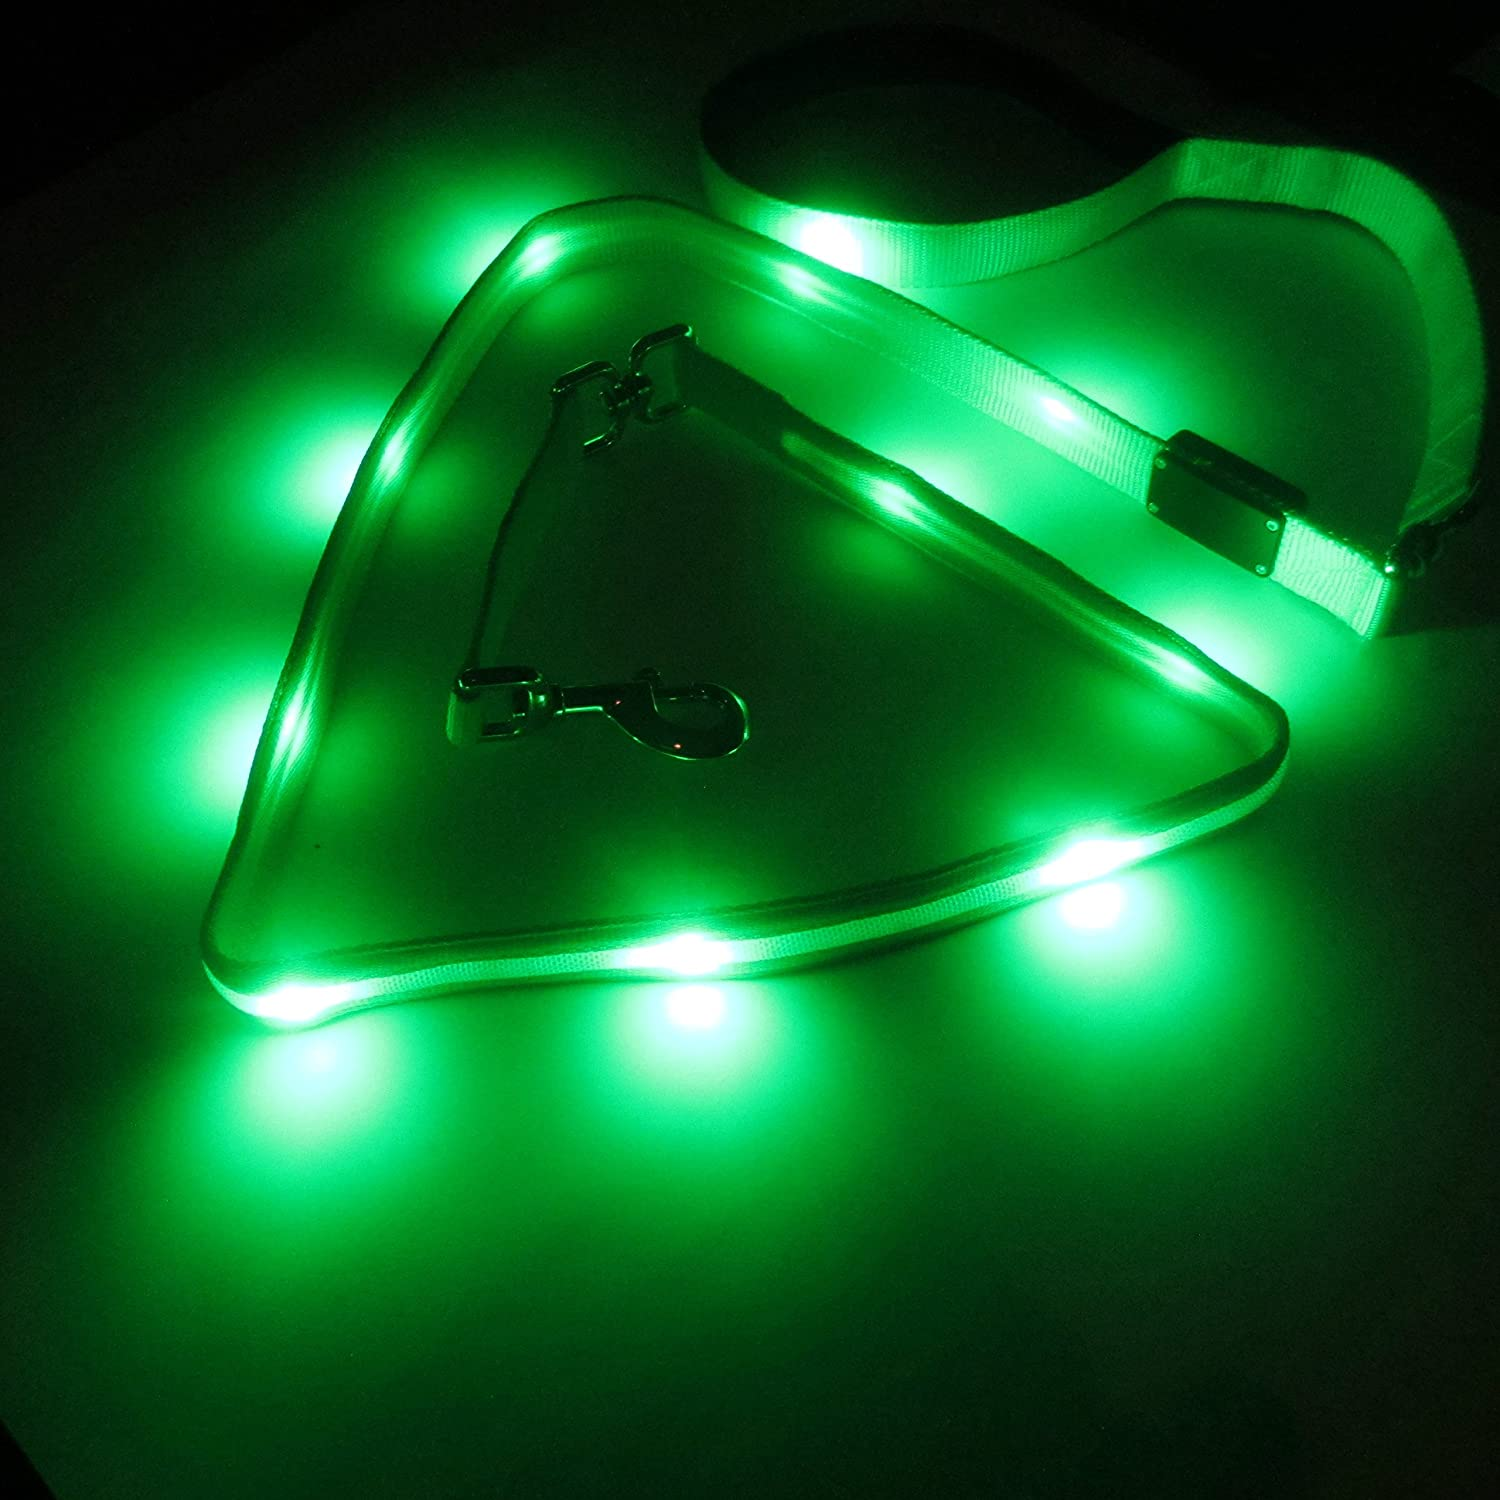 Green Large Green Large Blazin' Safety LED Dog Leash USB Rechargeable Flashing Light, 6 Ft, Water Resistant Avoid Danger Green